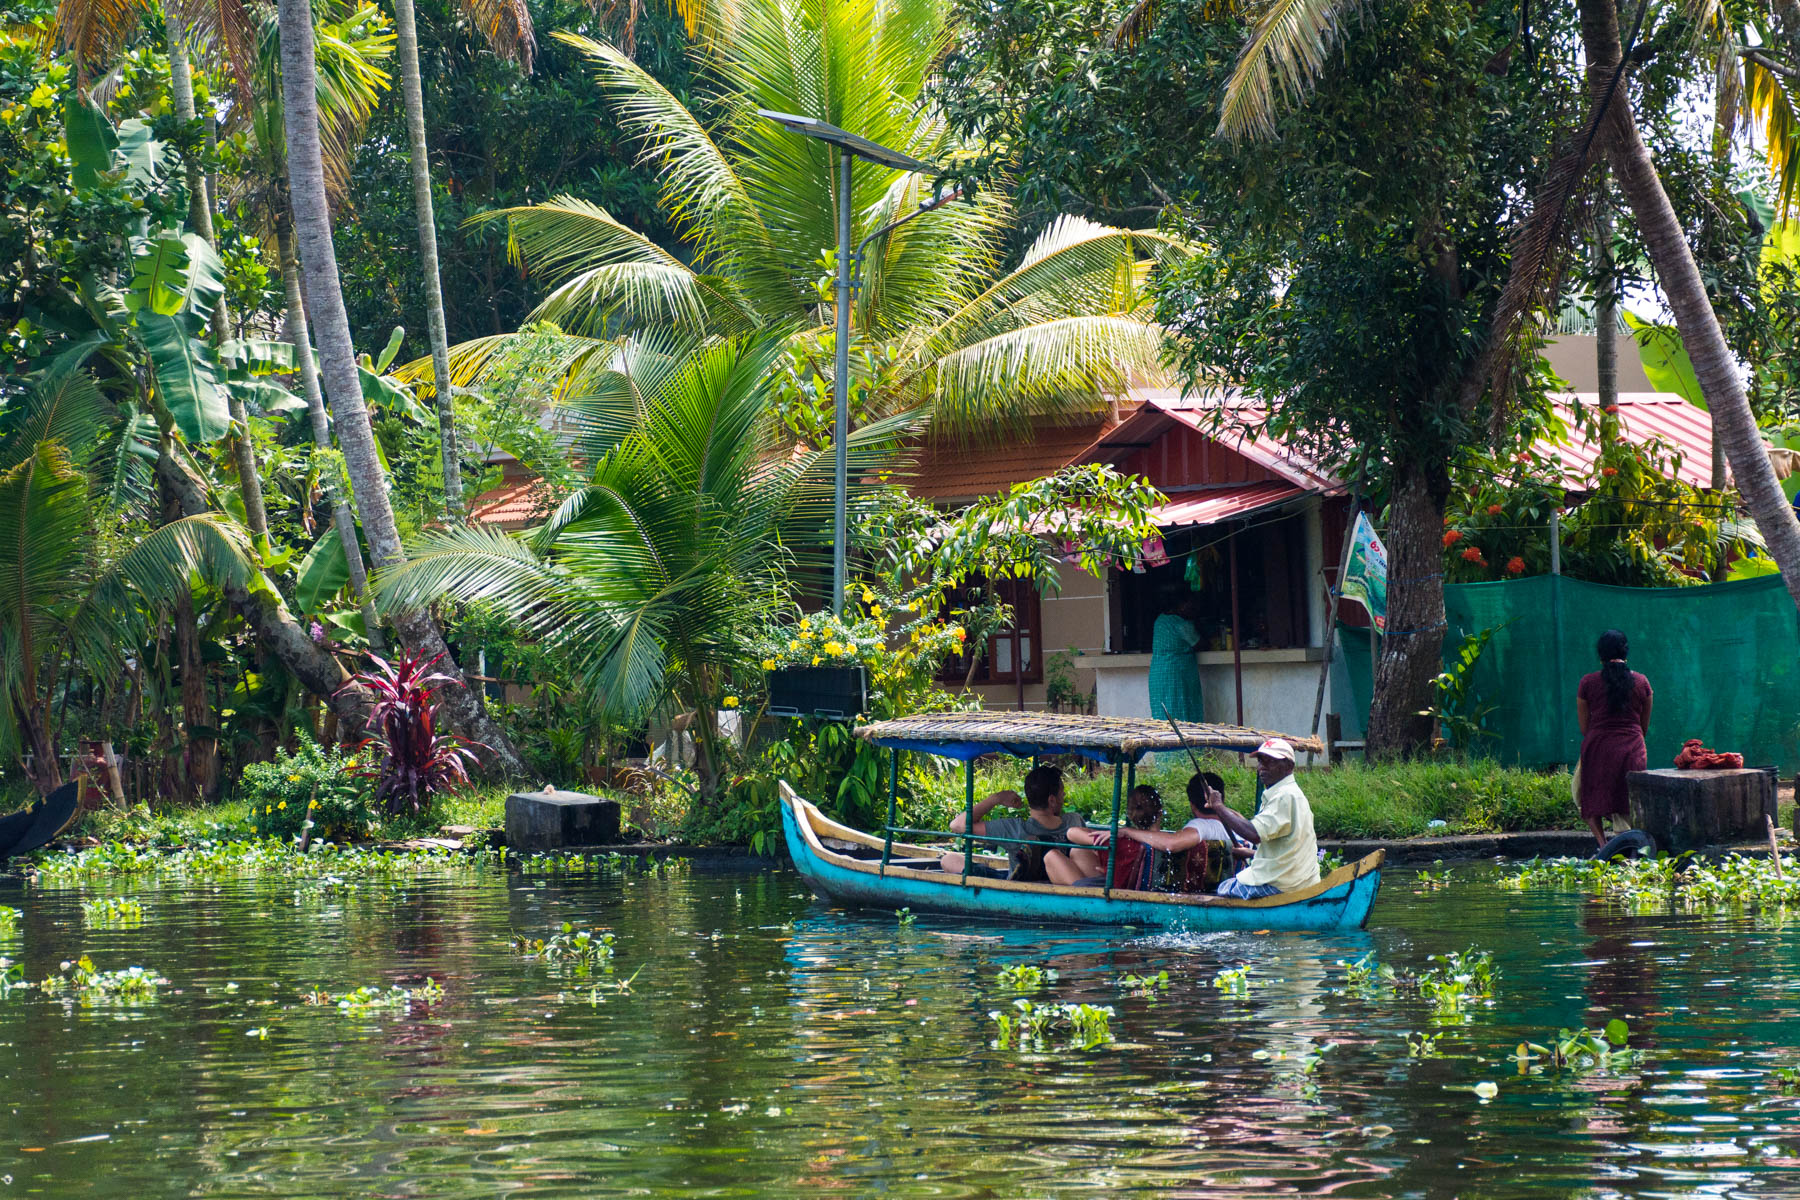 Non-motorized boat in Alleppey (Alappuzha), Kerala, India